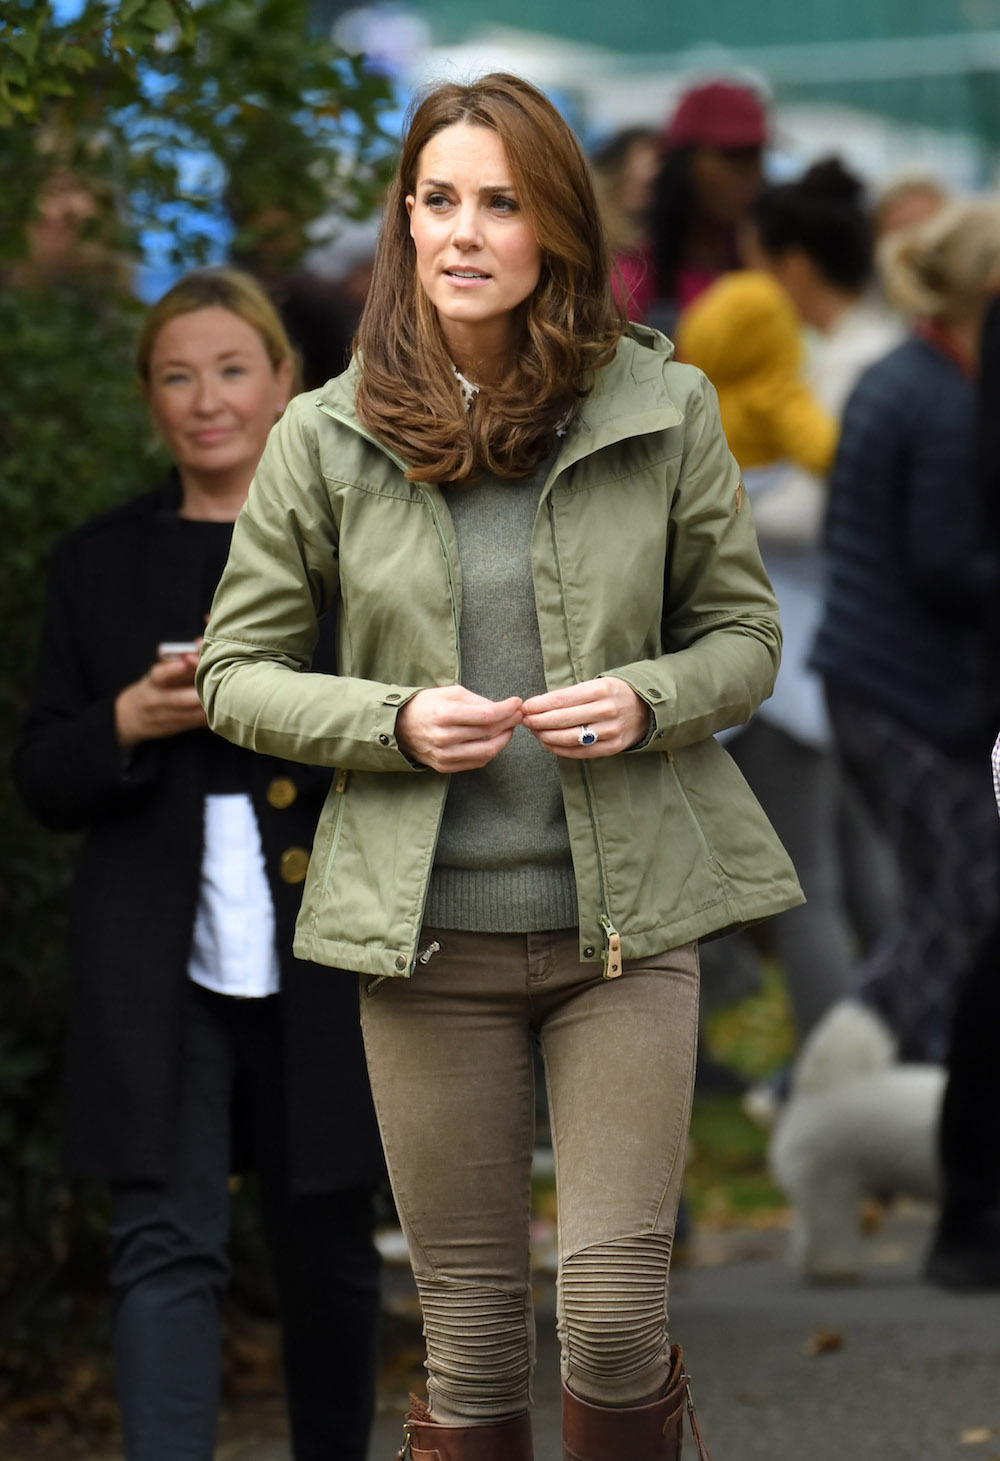 61d6a33b The Duchess of Cambridge paired her Zara jeans with an olive-toned coat, a  matching sweater, and brown knee-length boots.